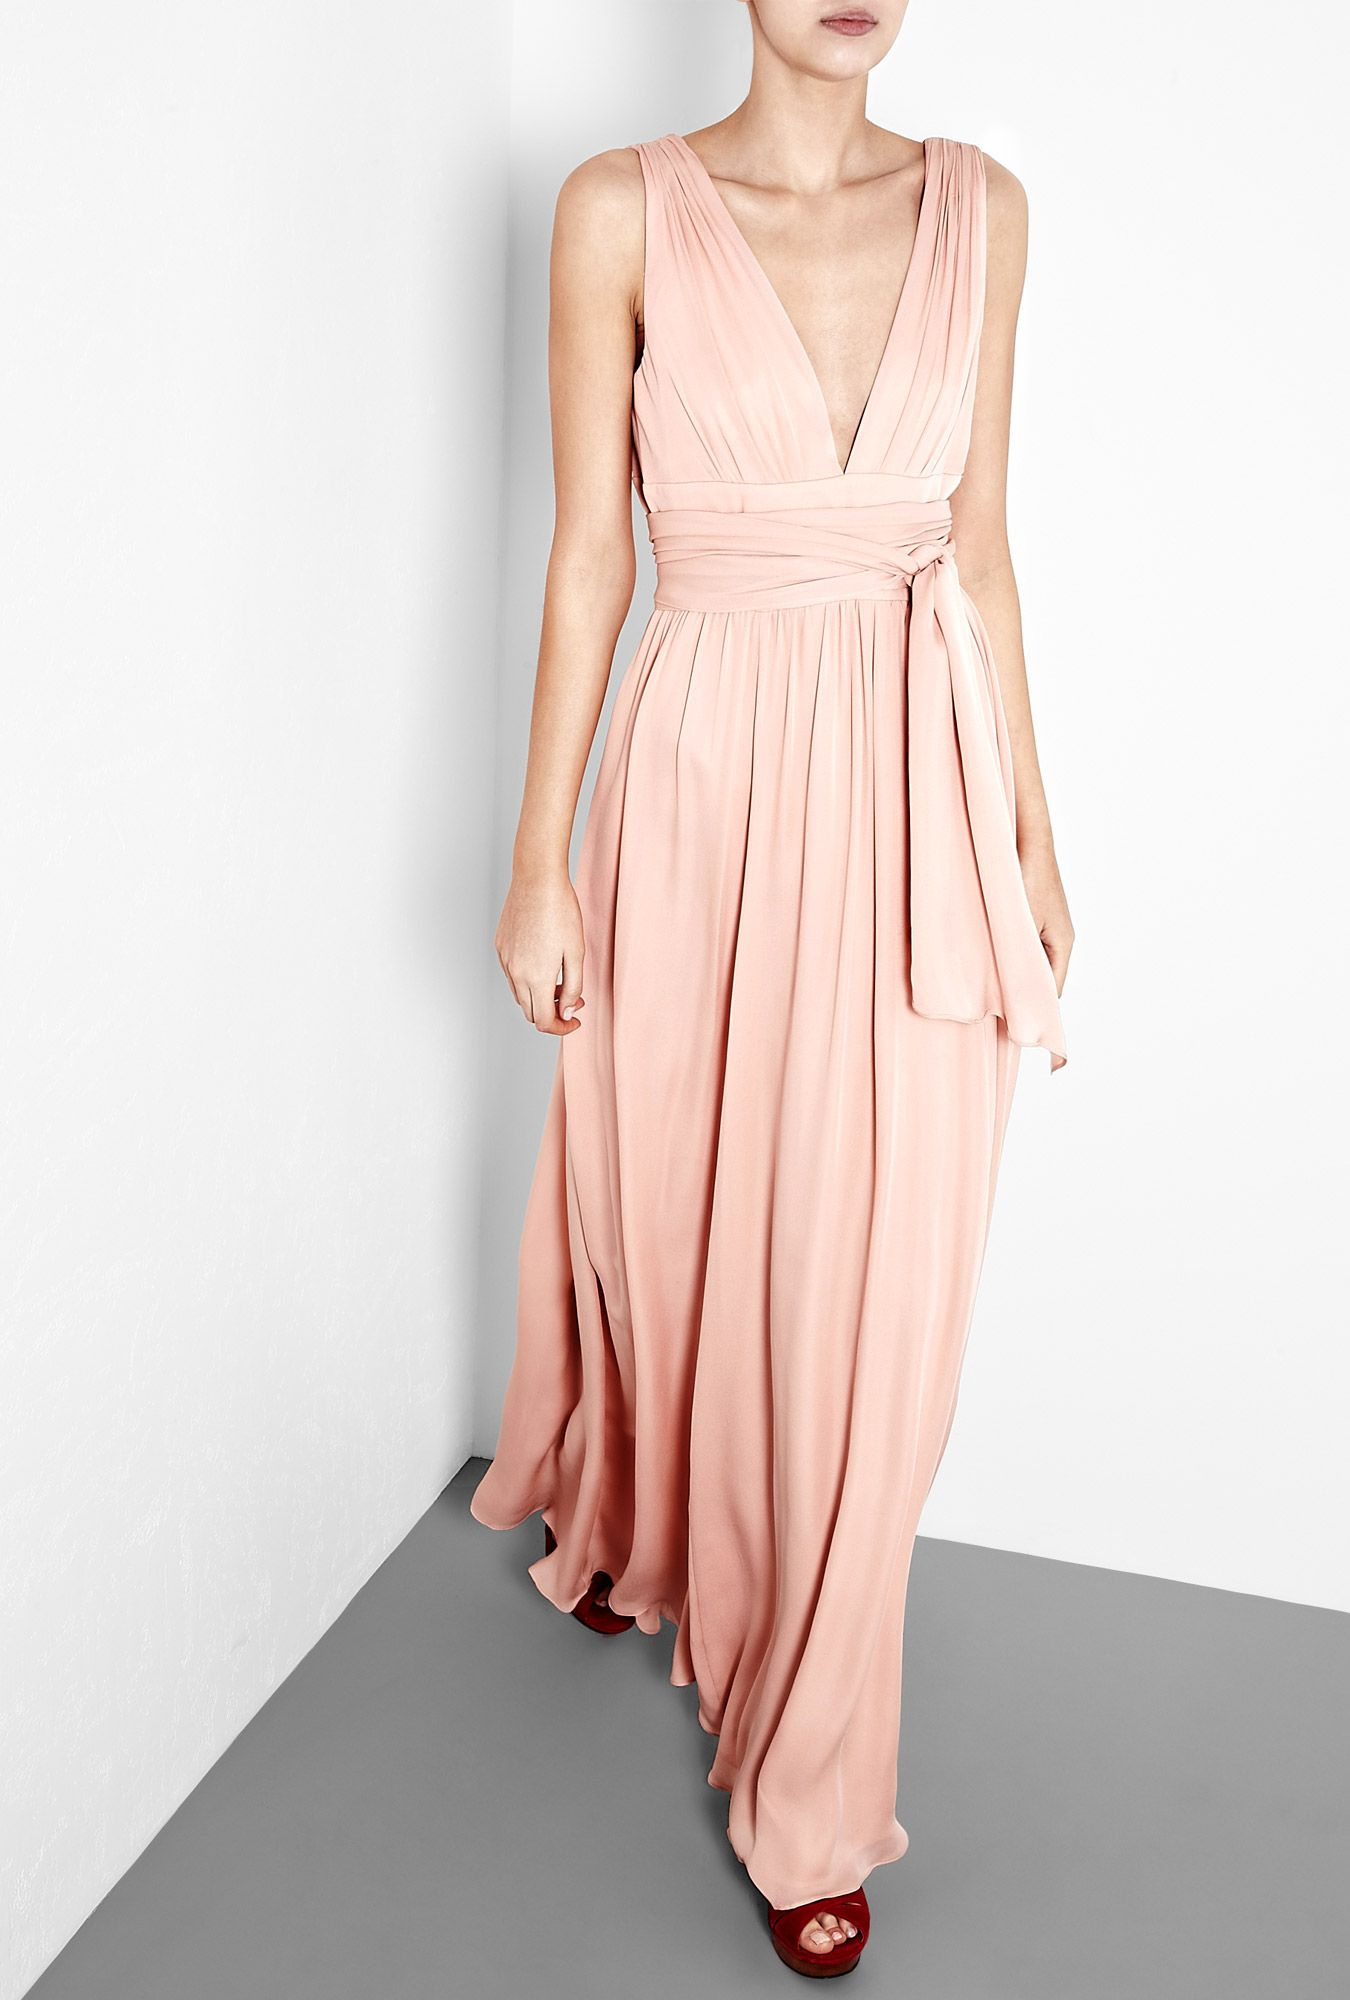 Bisque ultimate silk goddess gown by halston heritage maids